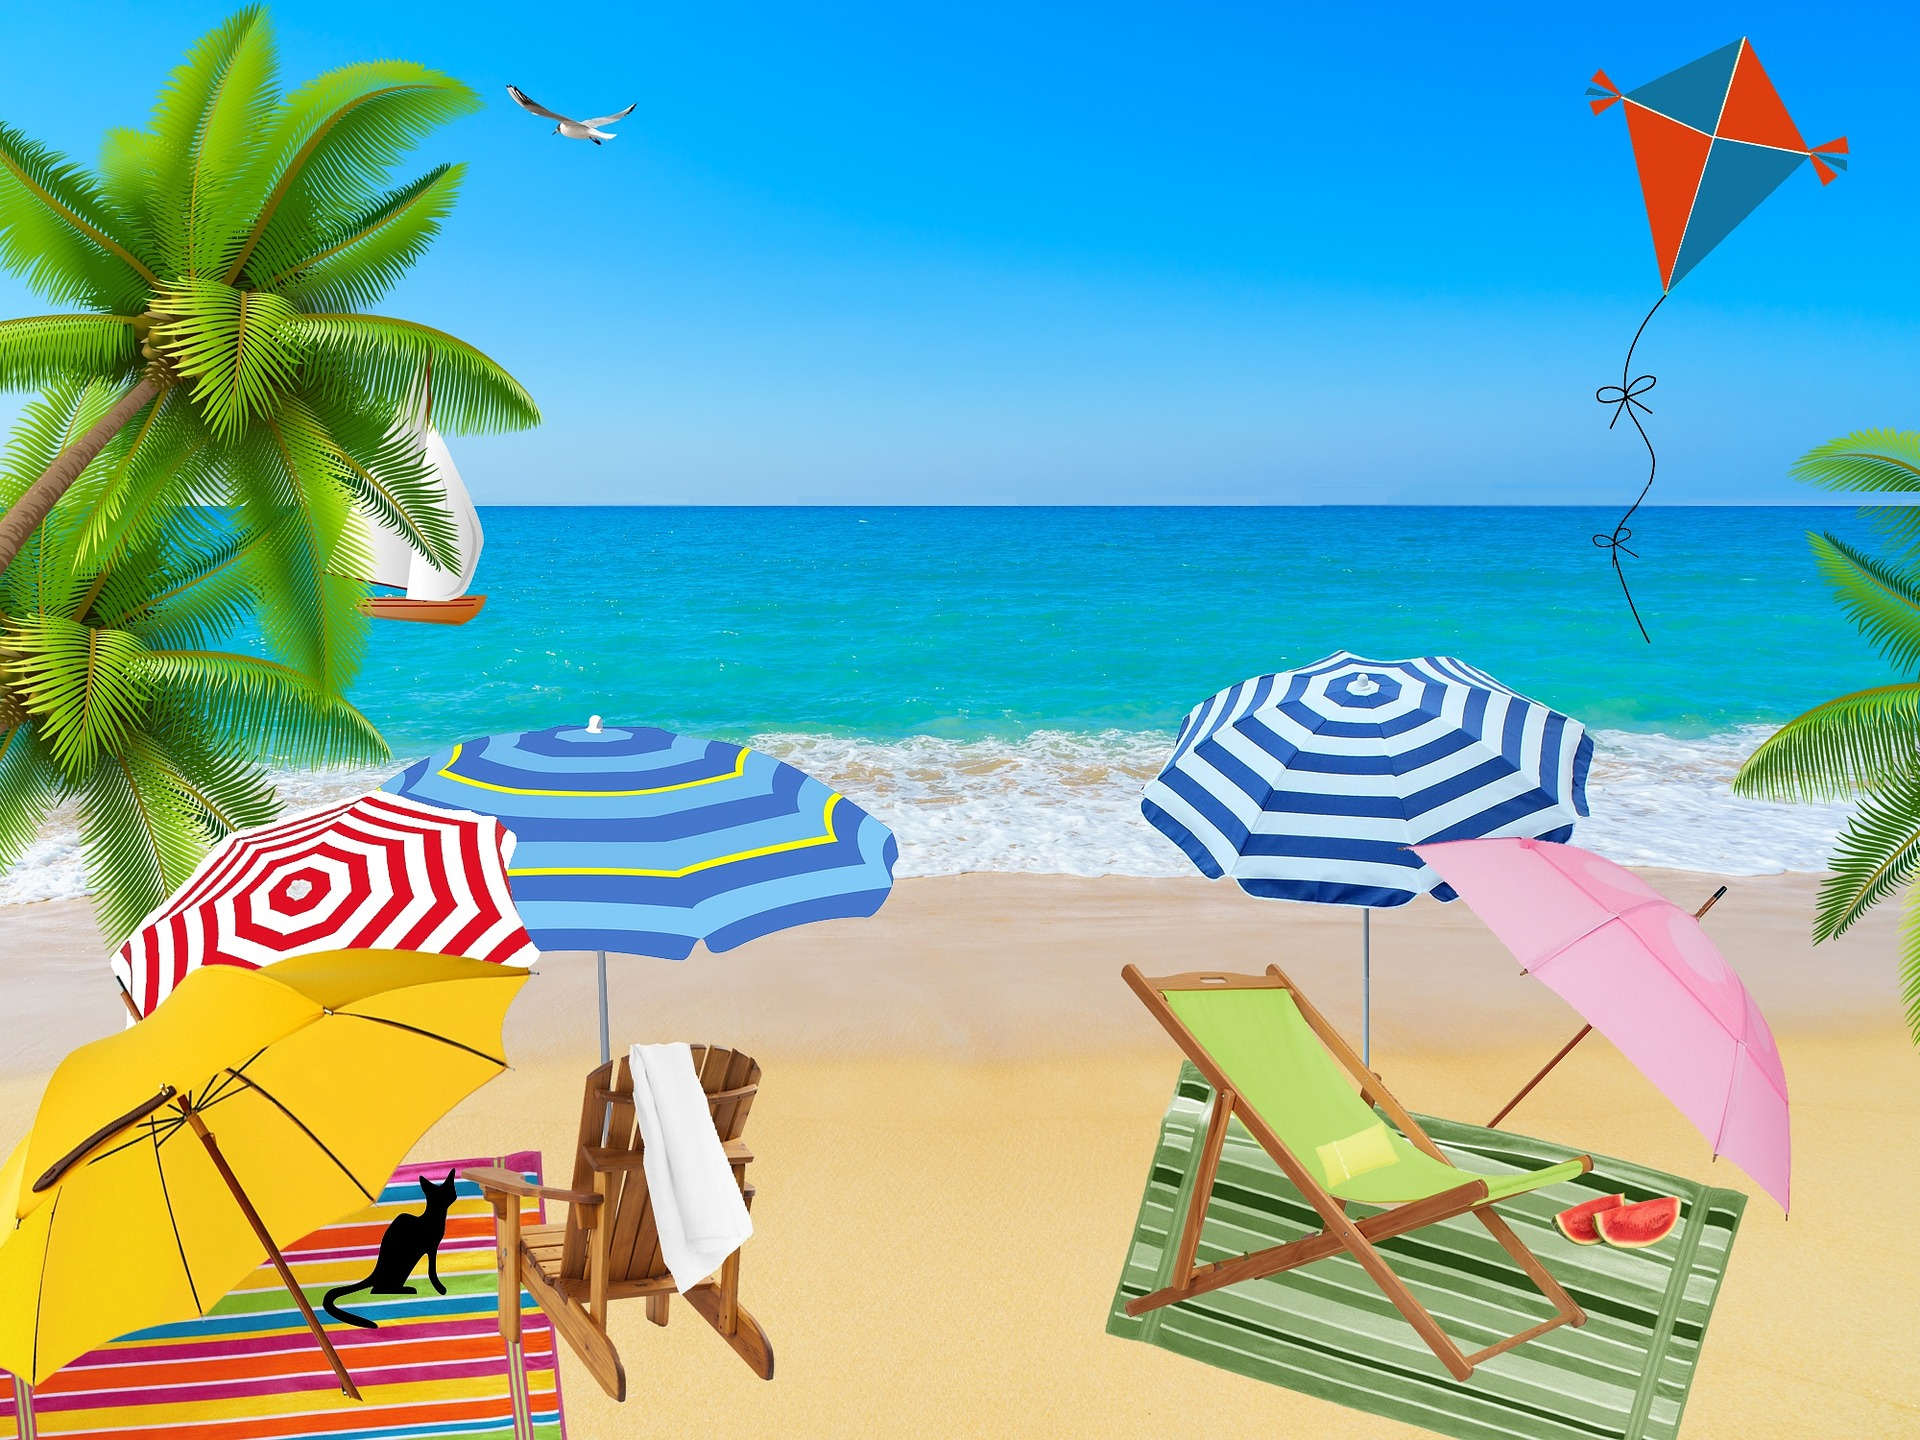 Parasols and beach loungers with a kite flying at the beach